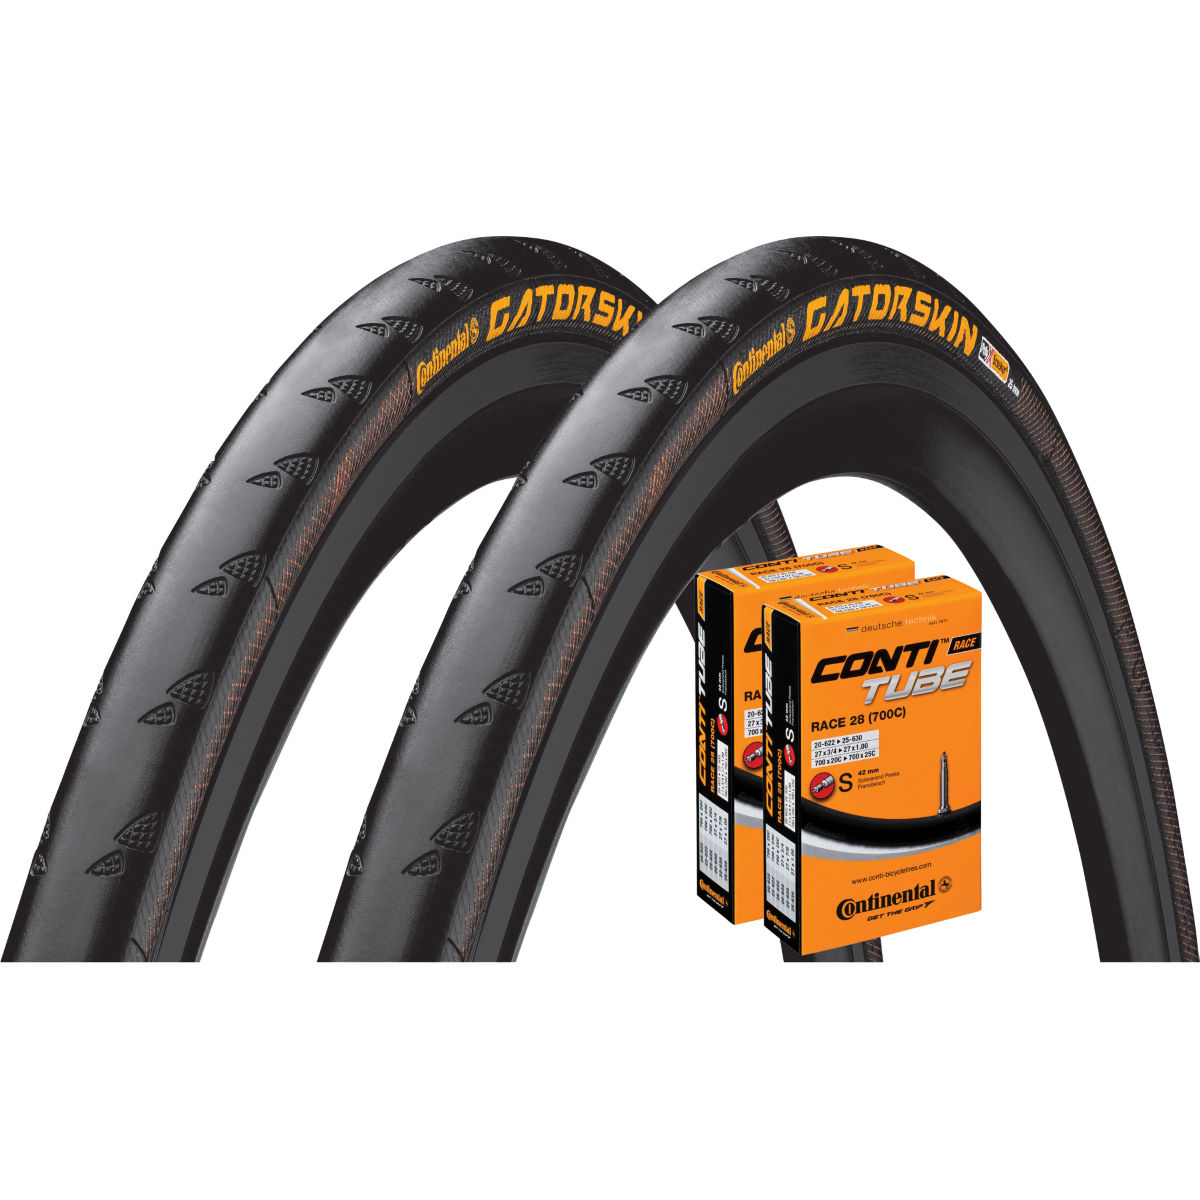 Continental Continental Gatorskin 23c Tyres + 5 Tubes   Tyres